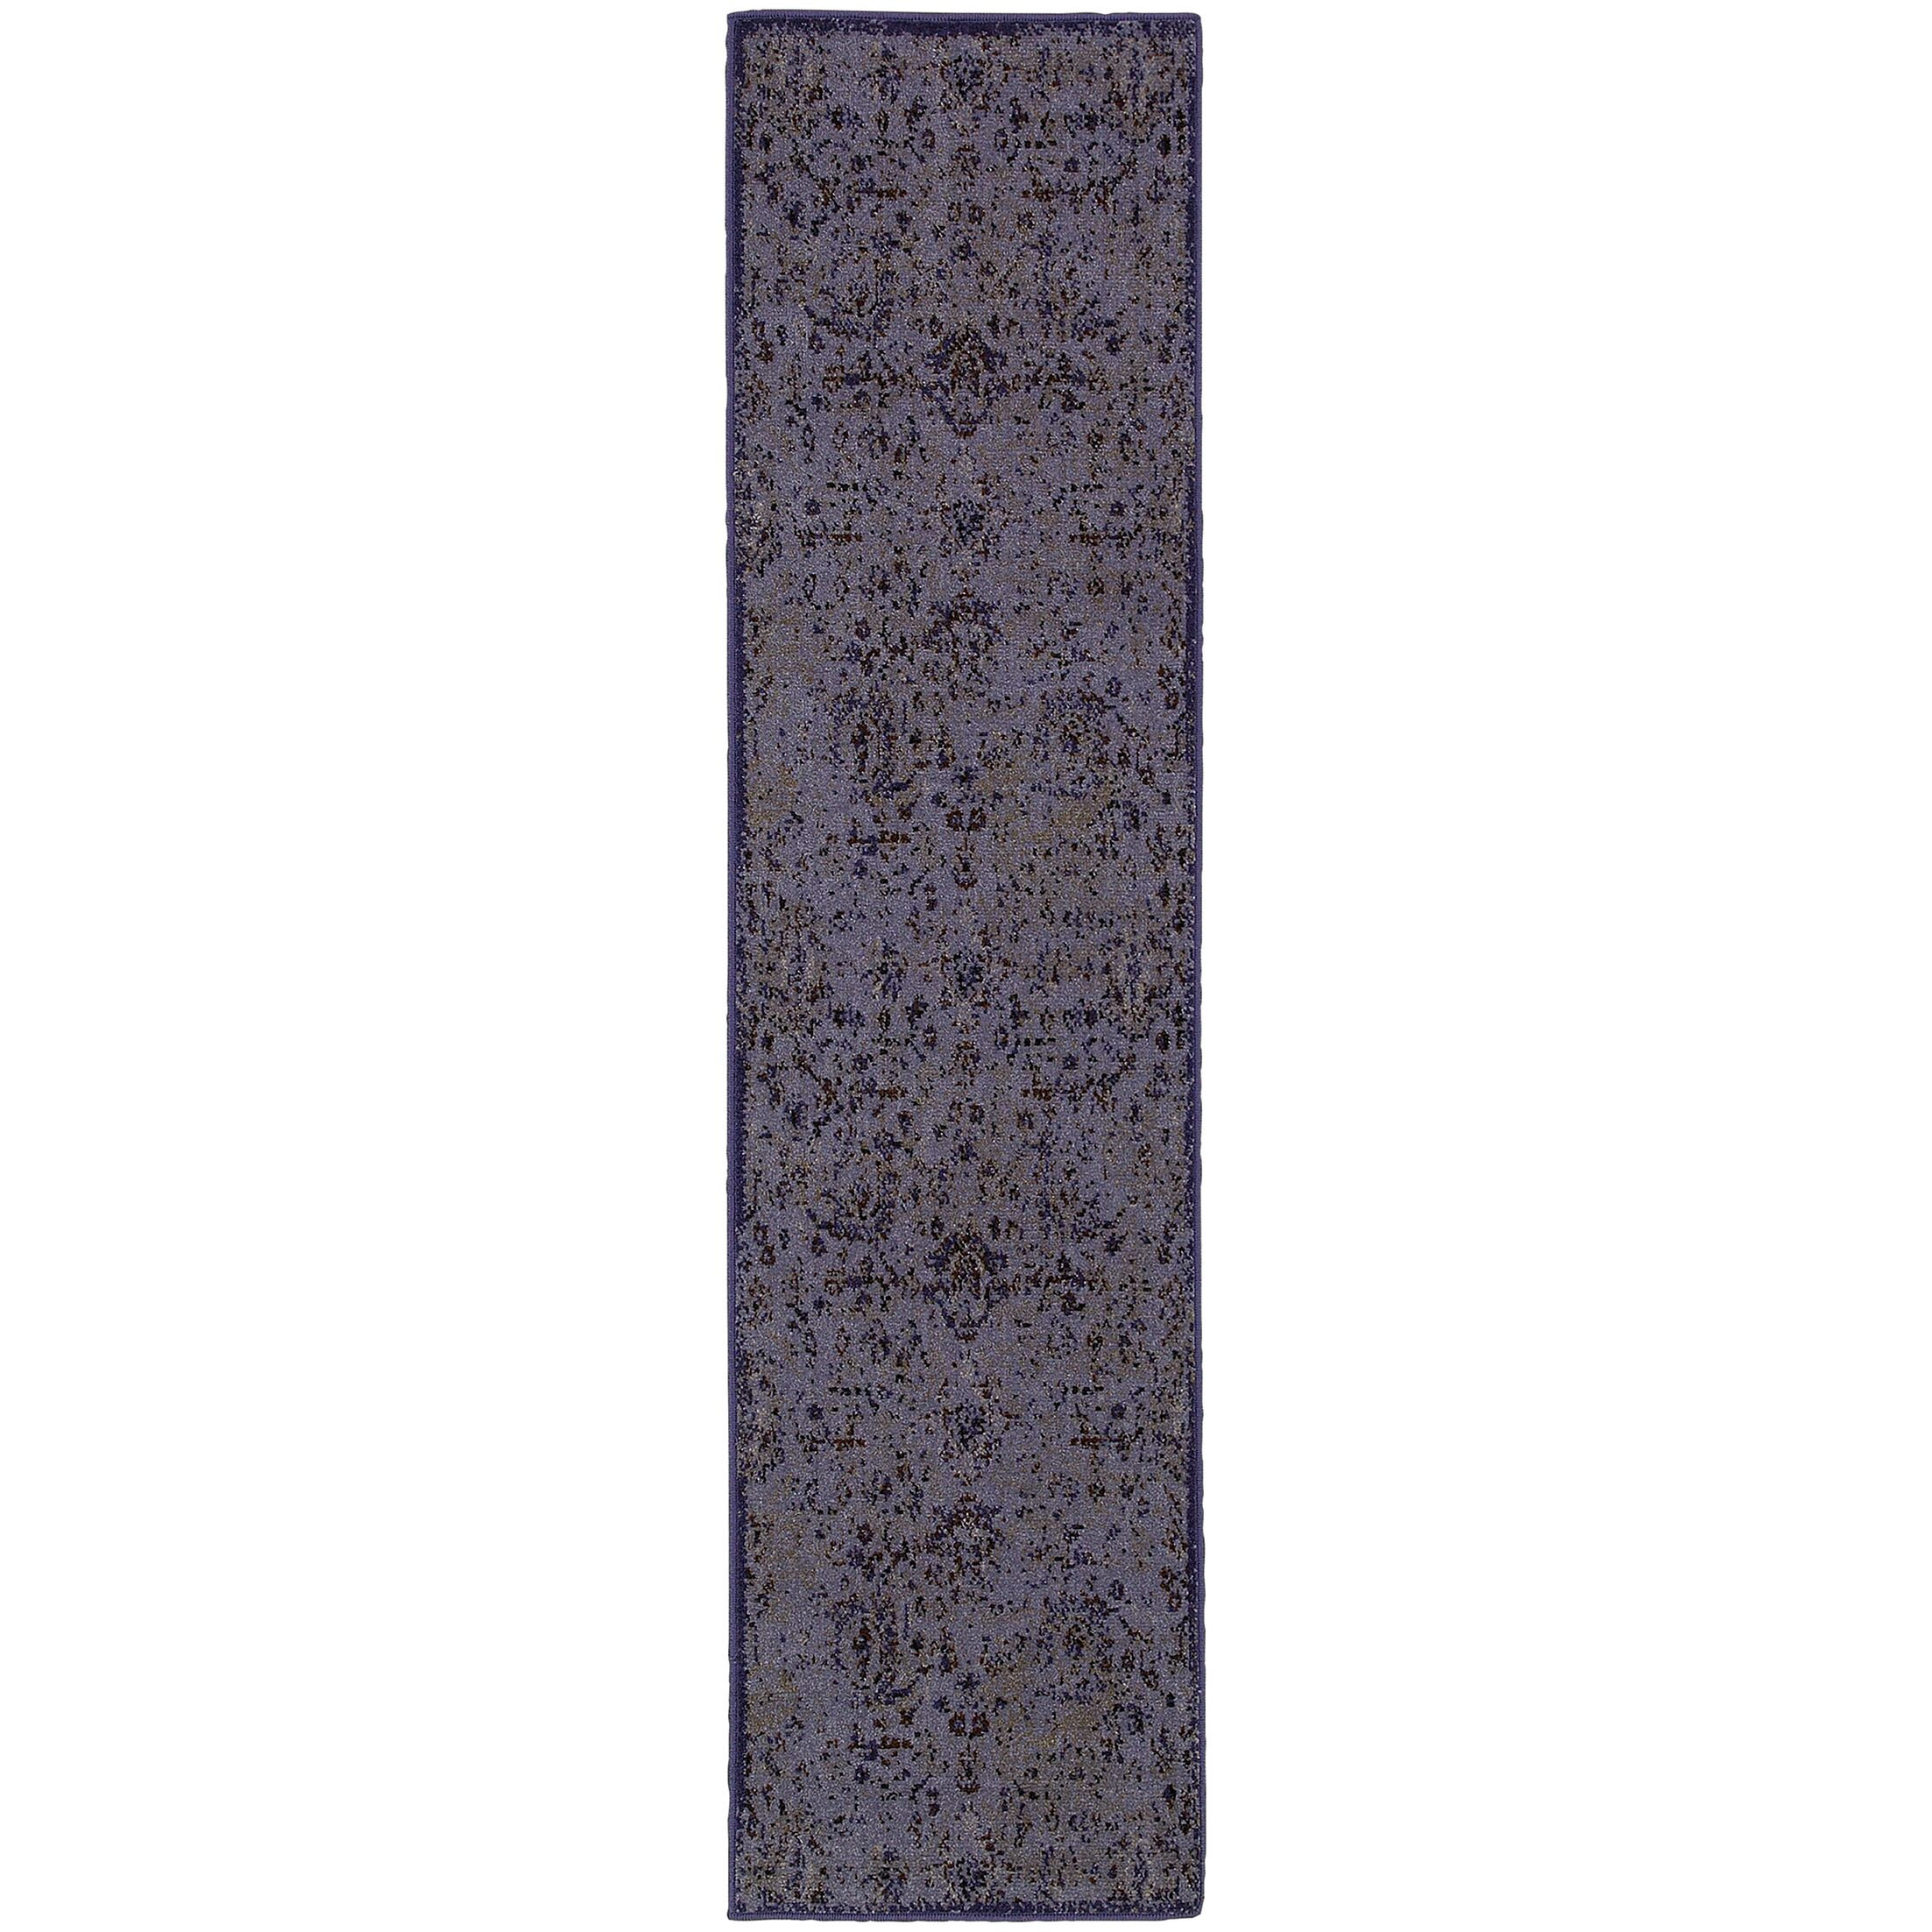 Raiden Purple/Beige Area Rug Rug Size: Runner 1'1 x 7'6